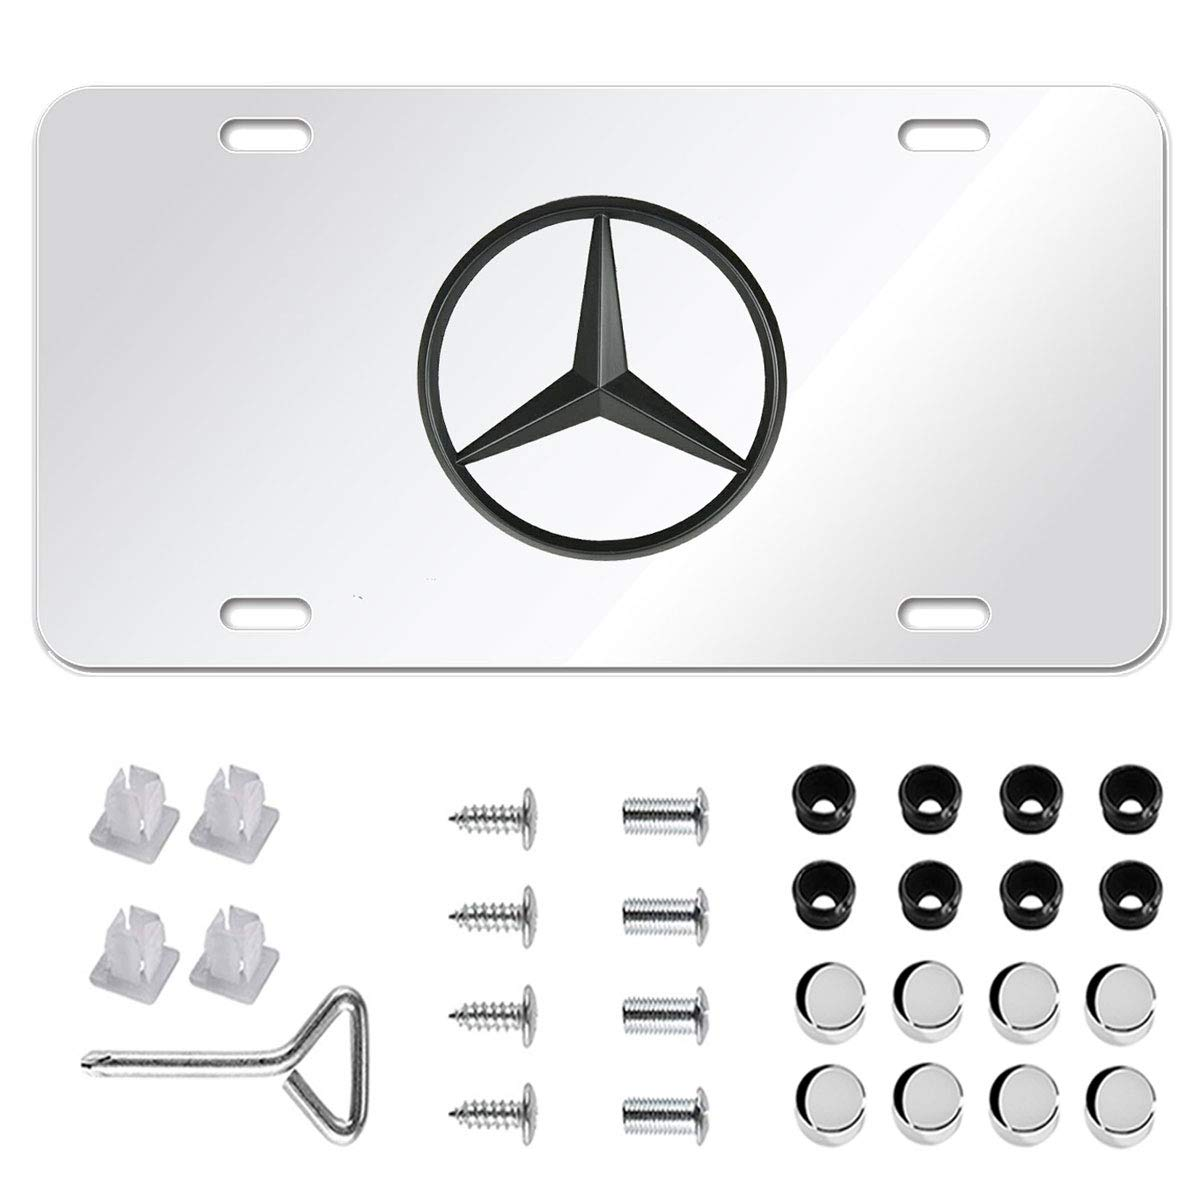 Luxury Black Chrome 3D Front License Plate Covers with Logo Screw Nuts Set for Mercedes All Models Fast /& Furious for Mercedes Benz Stainless Steel License Plate